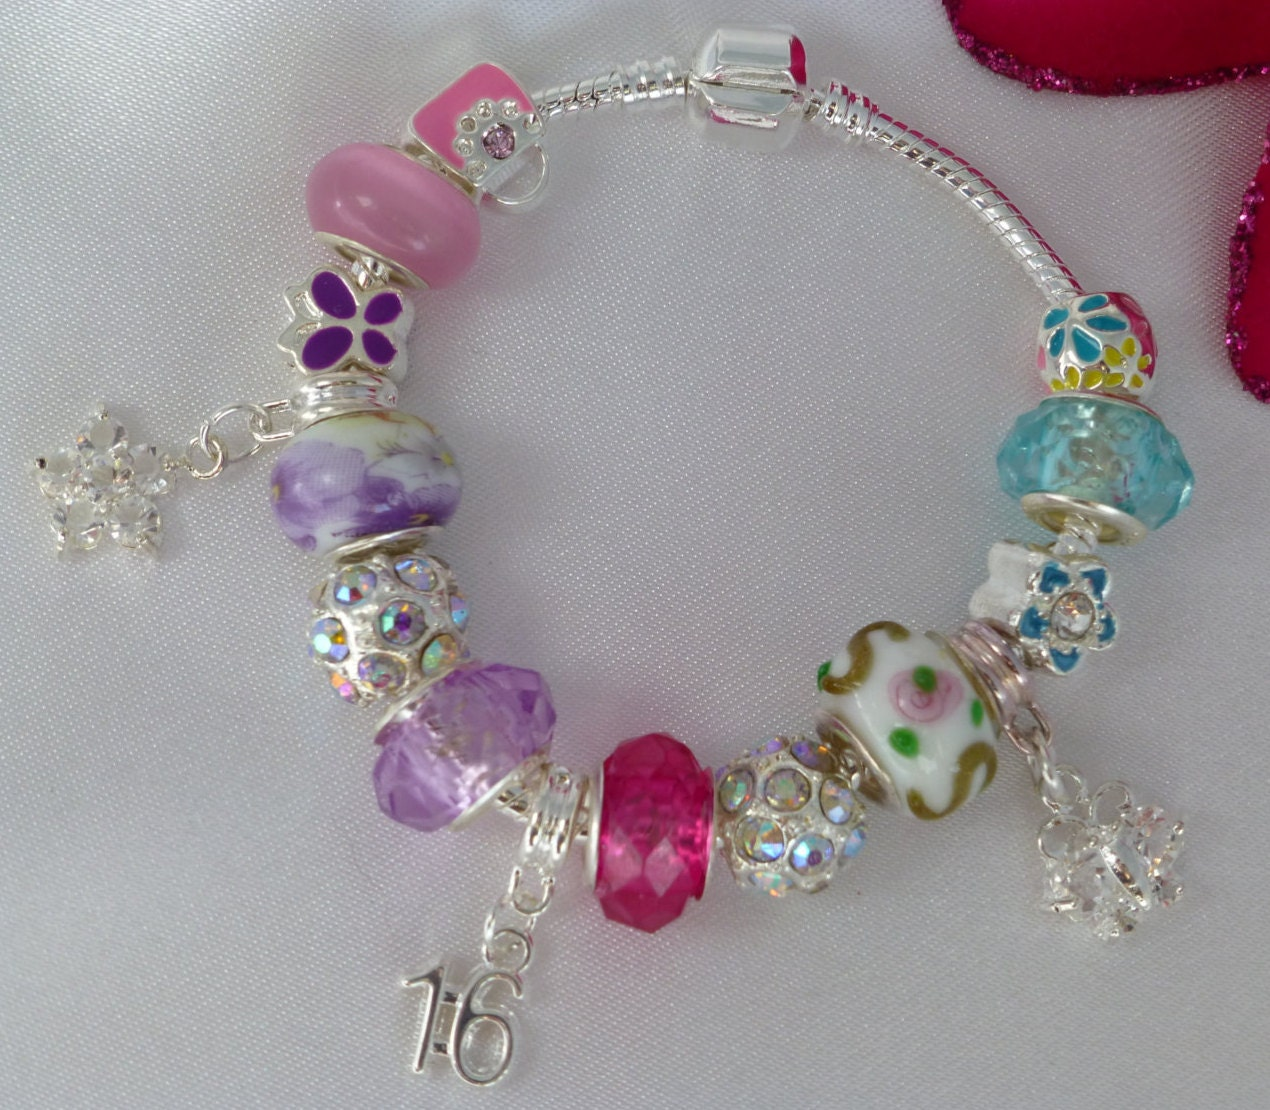 Charm Bracelet 16th Birthday 18th Or 21st Charm In By